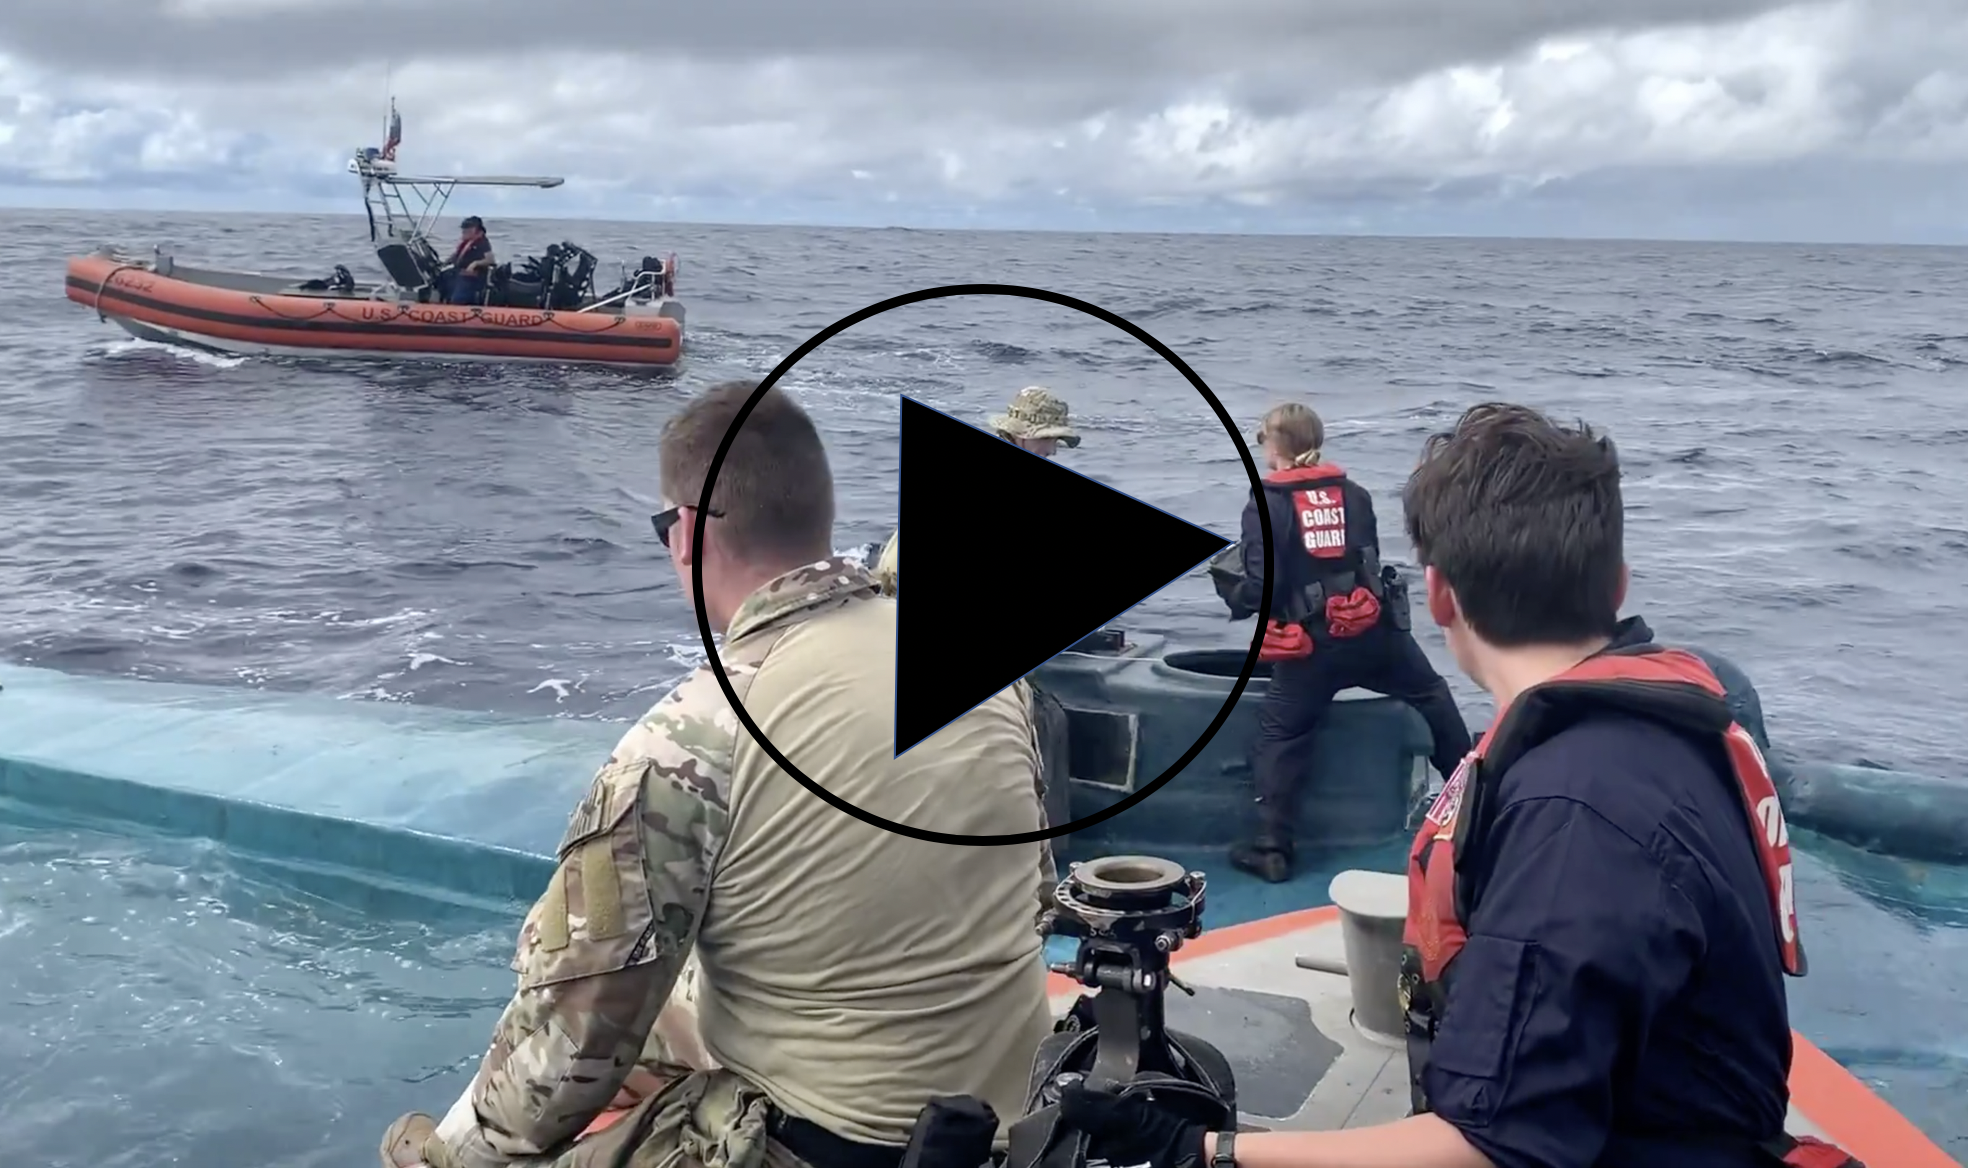 VIDEO: Coast Guard Cutter Bertholf crews interdict suspected drug-smuggling vessel in Eastern Pacific Ocean